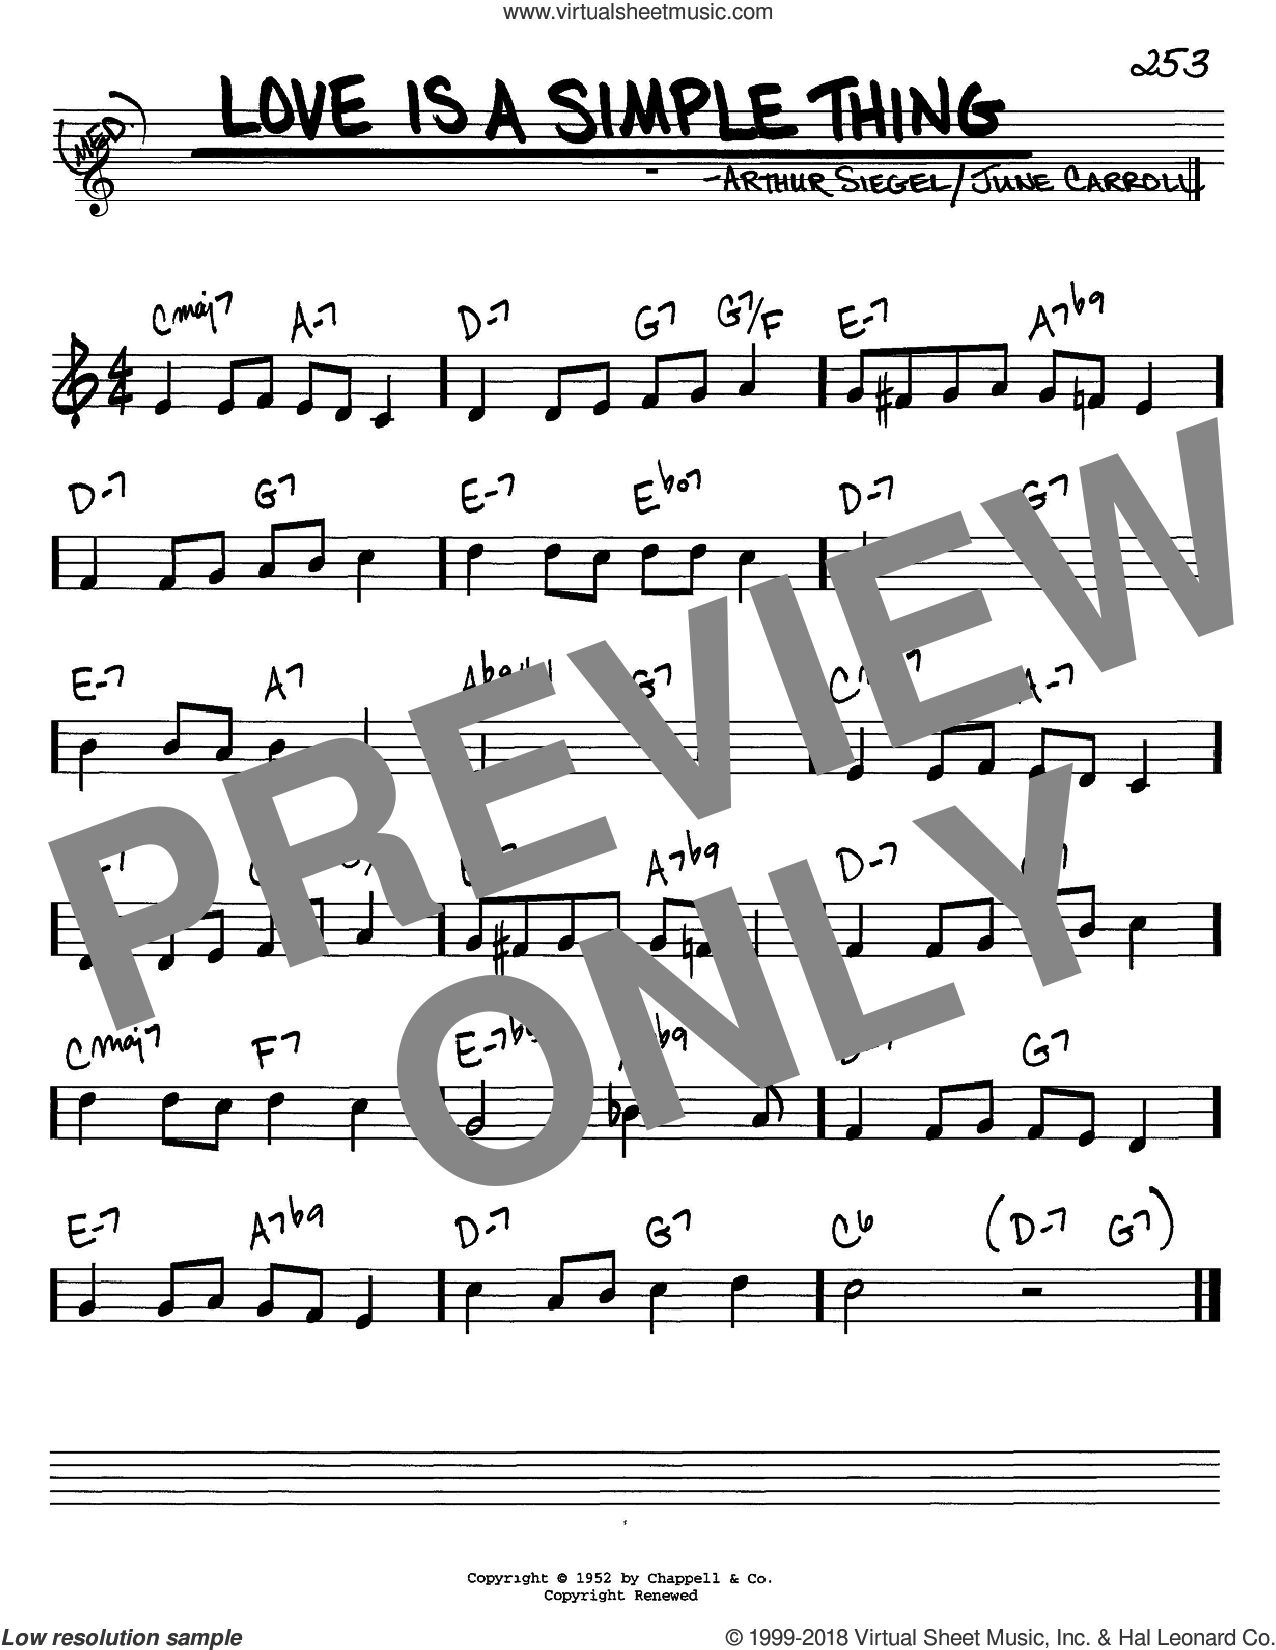 Love Is A Simple Thing sheet music for voice and other instruments (in C) by June Carroll and Arthur Siegel, intermediate skill level